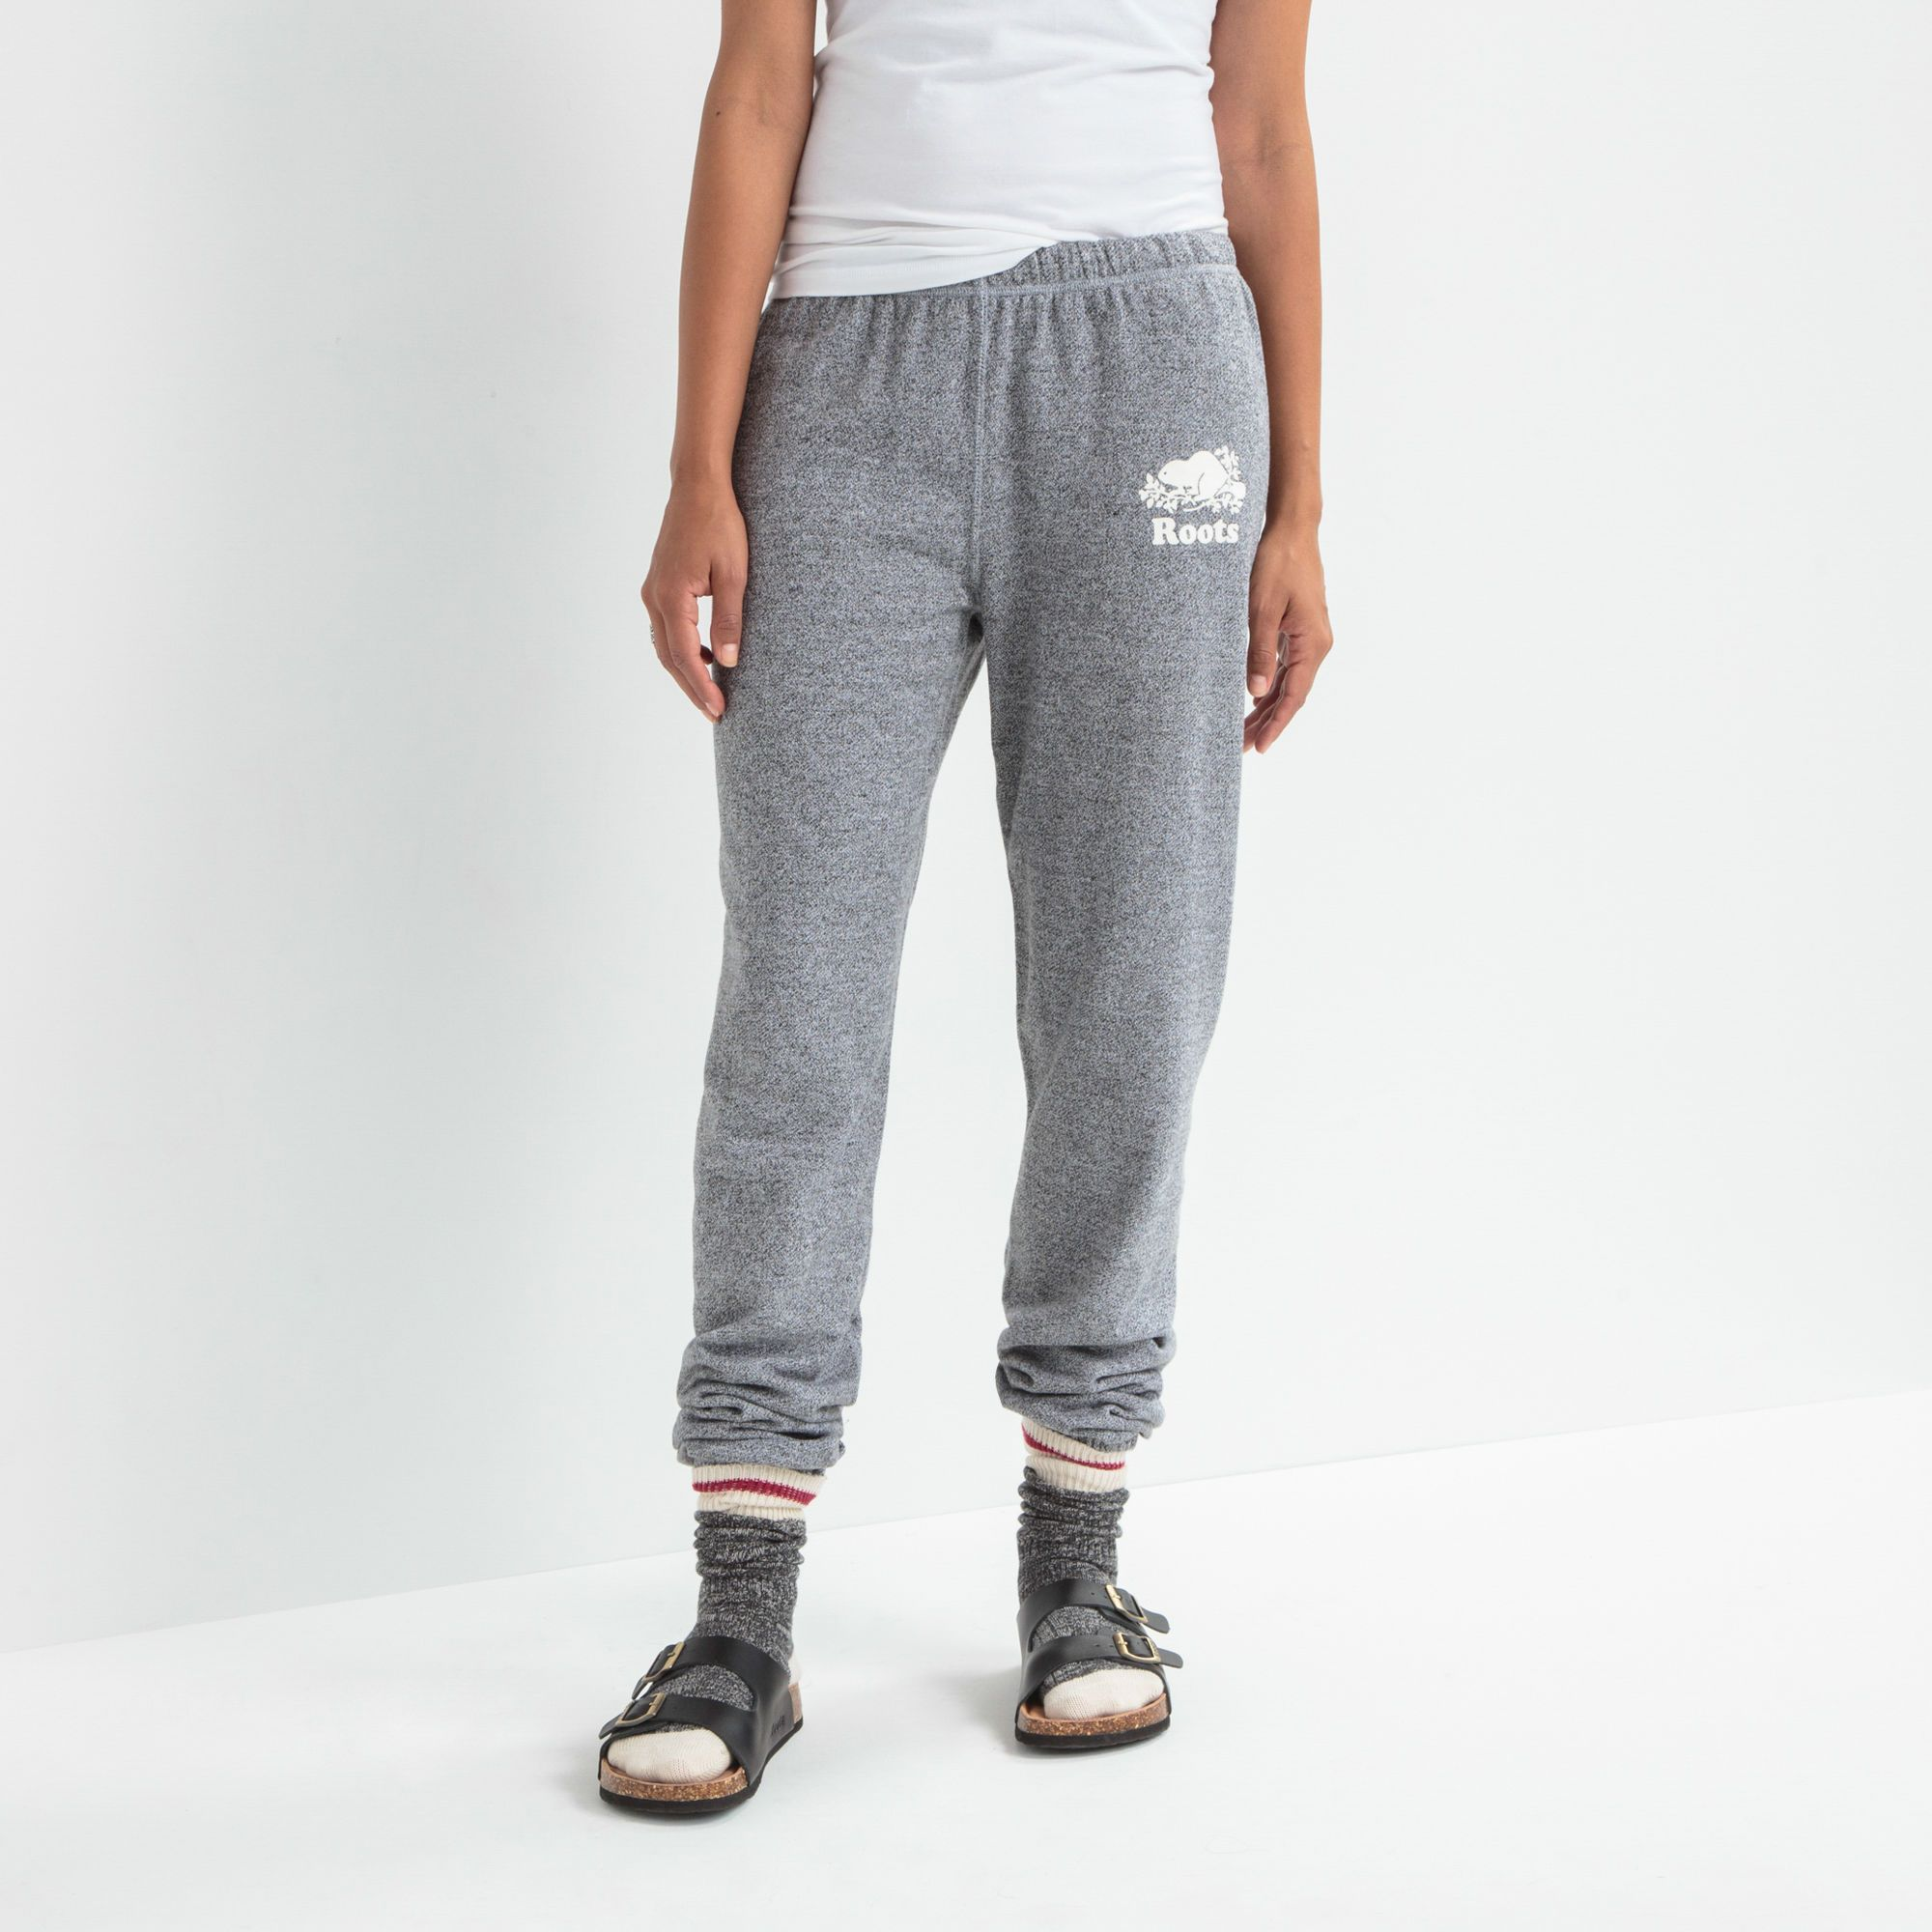 de744da96040a0 Roots Salt & Pepper Original Sweatpant | Women's Bottoms Sweatpants | Roots